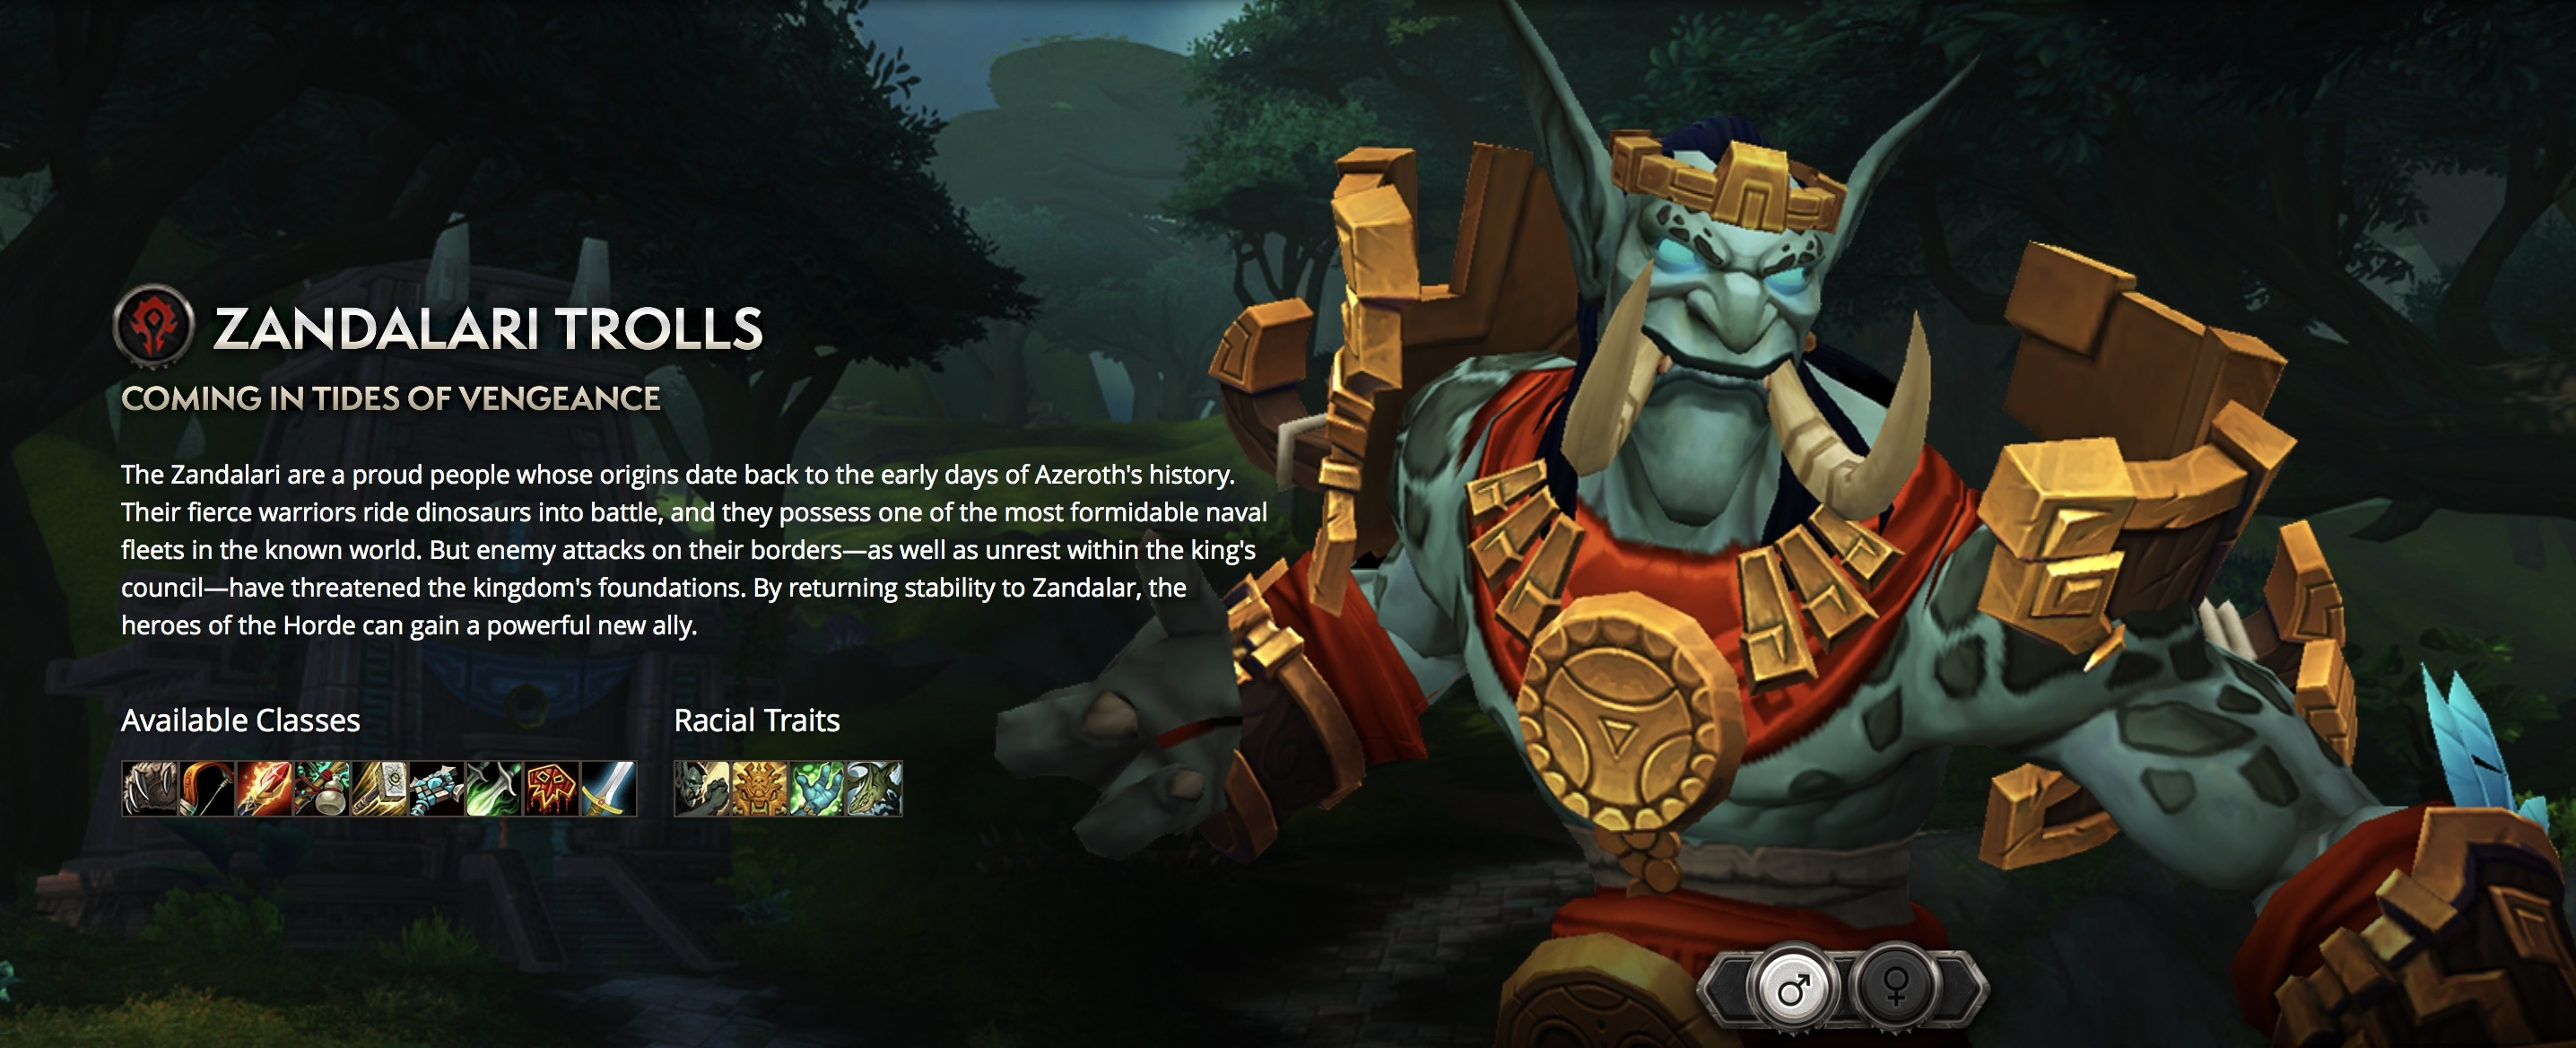 Zandalari Trolls Can Be Paladins - Available Classes and